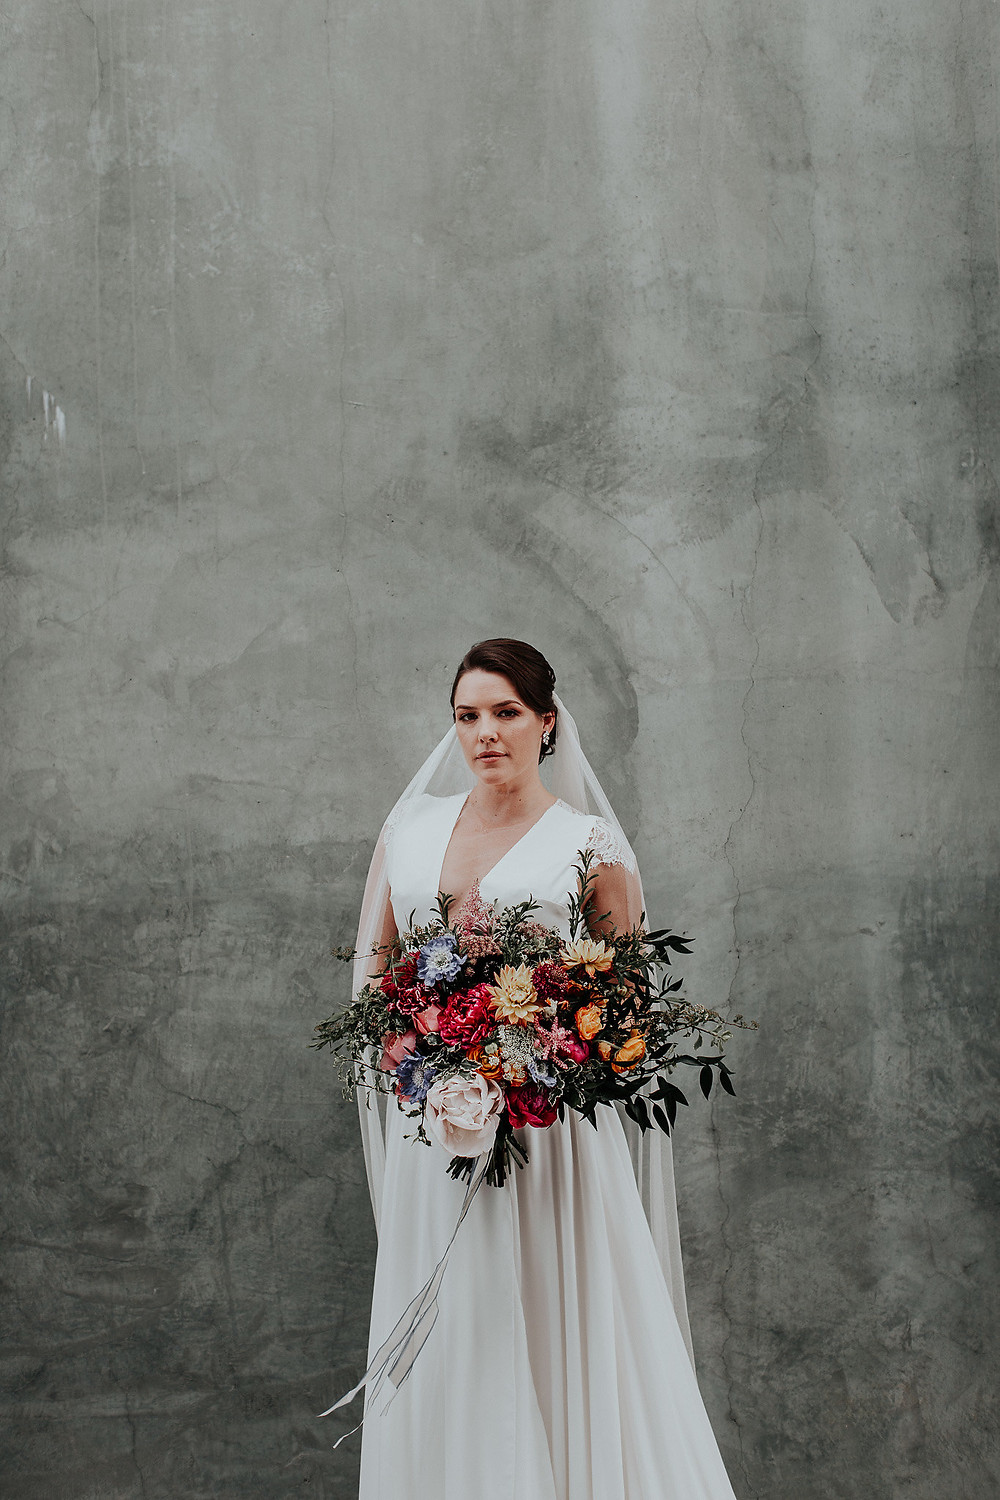 Bride gives us a moody pose as she stands with her bridal bouquet against a cement wall